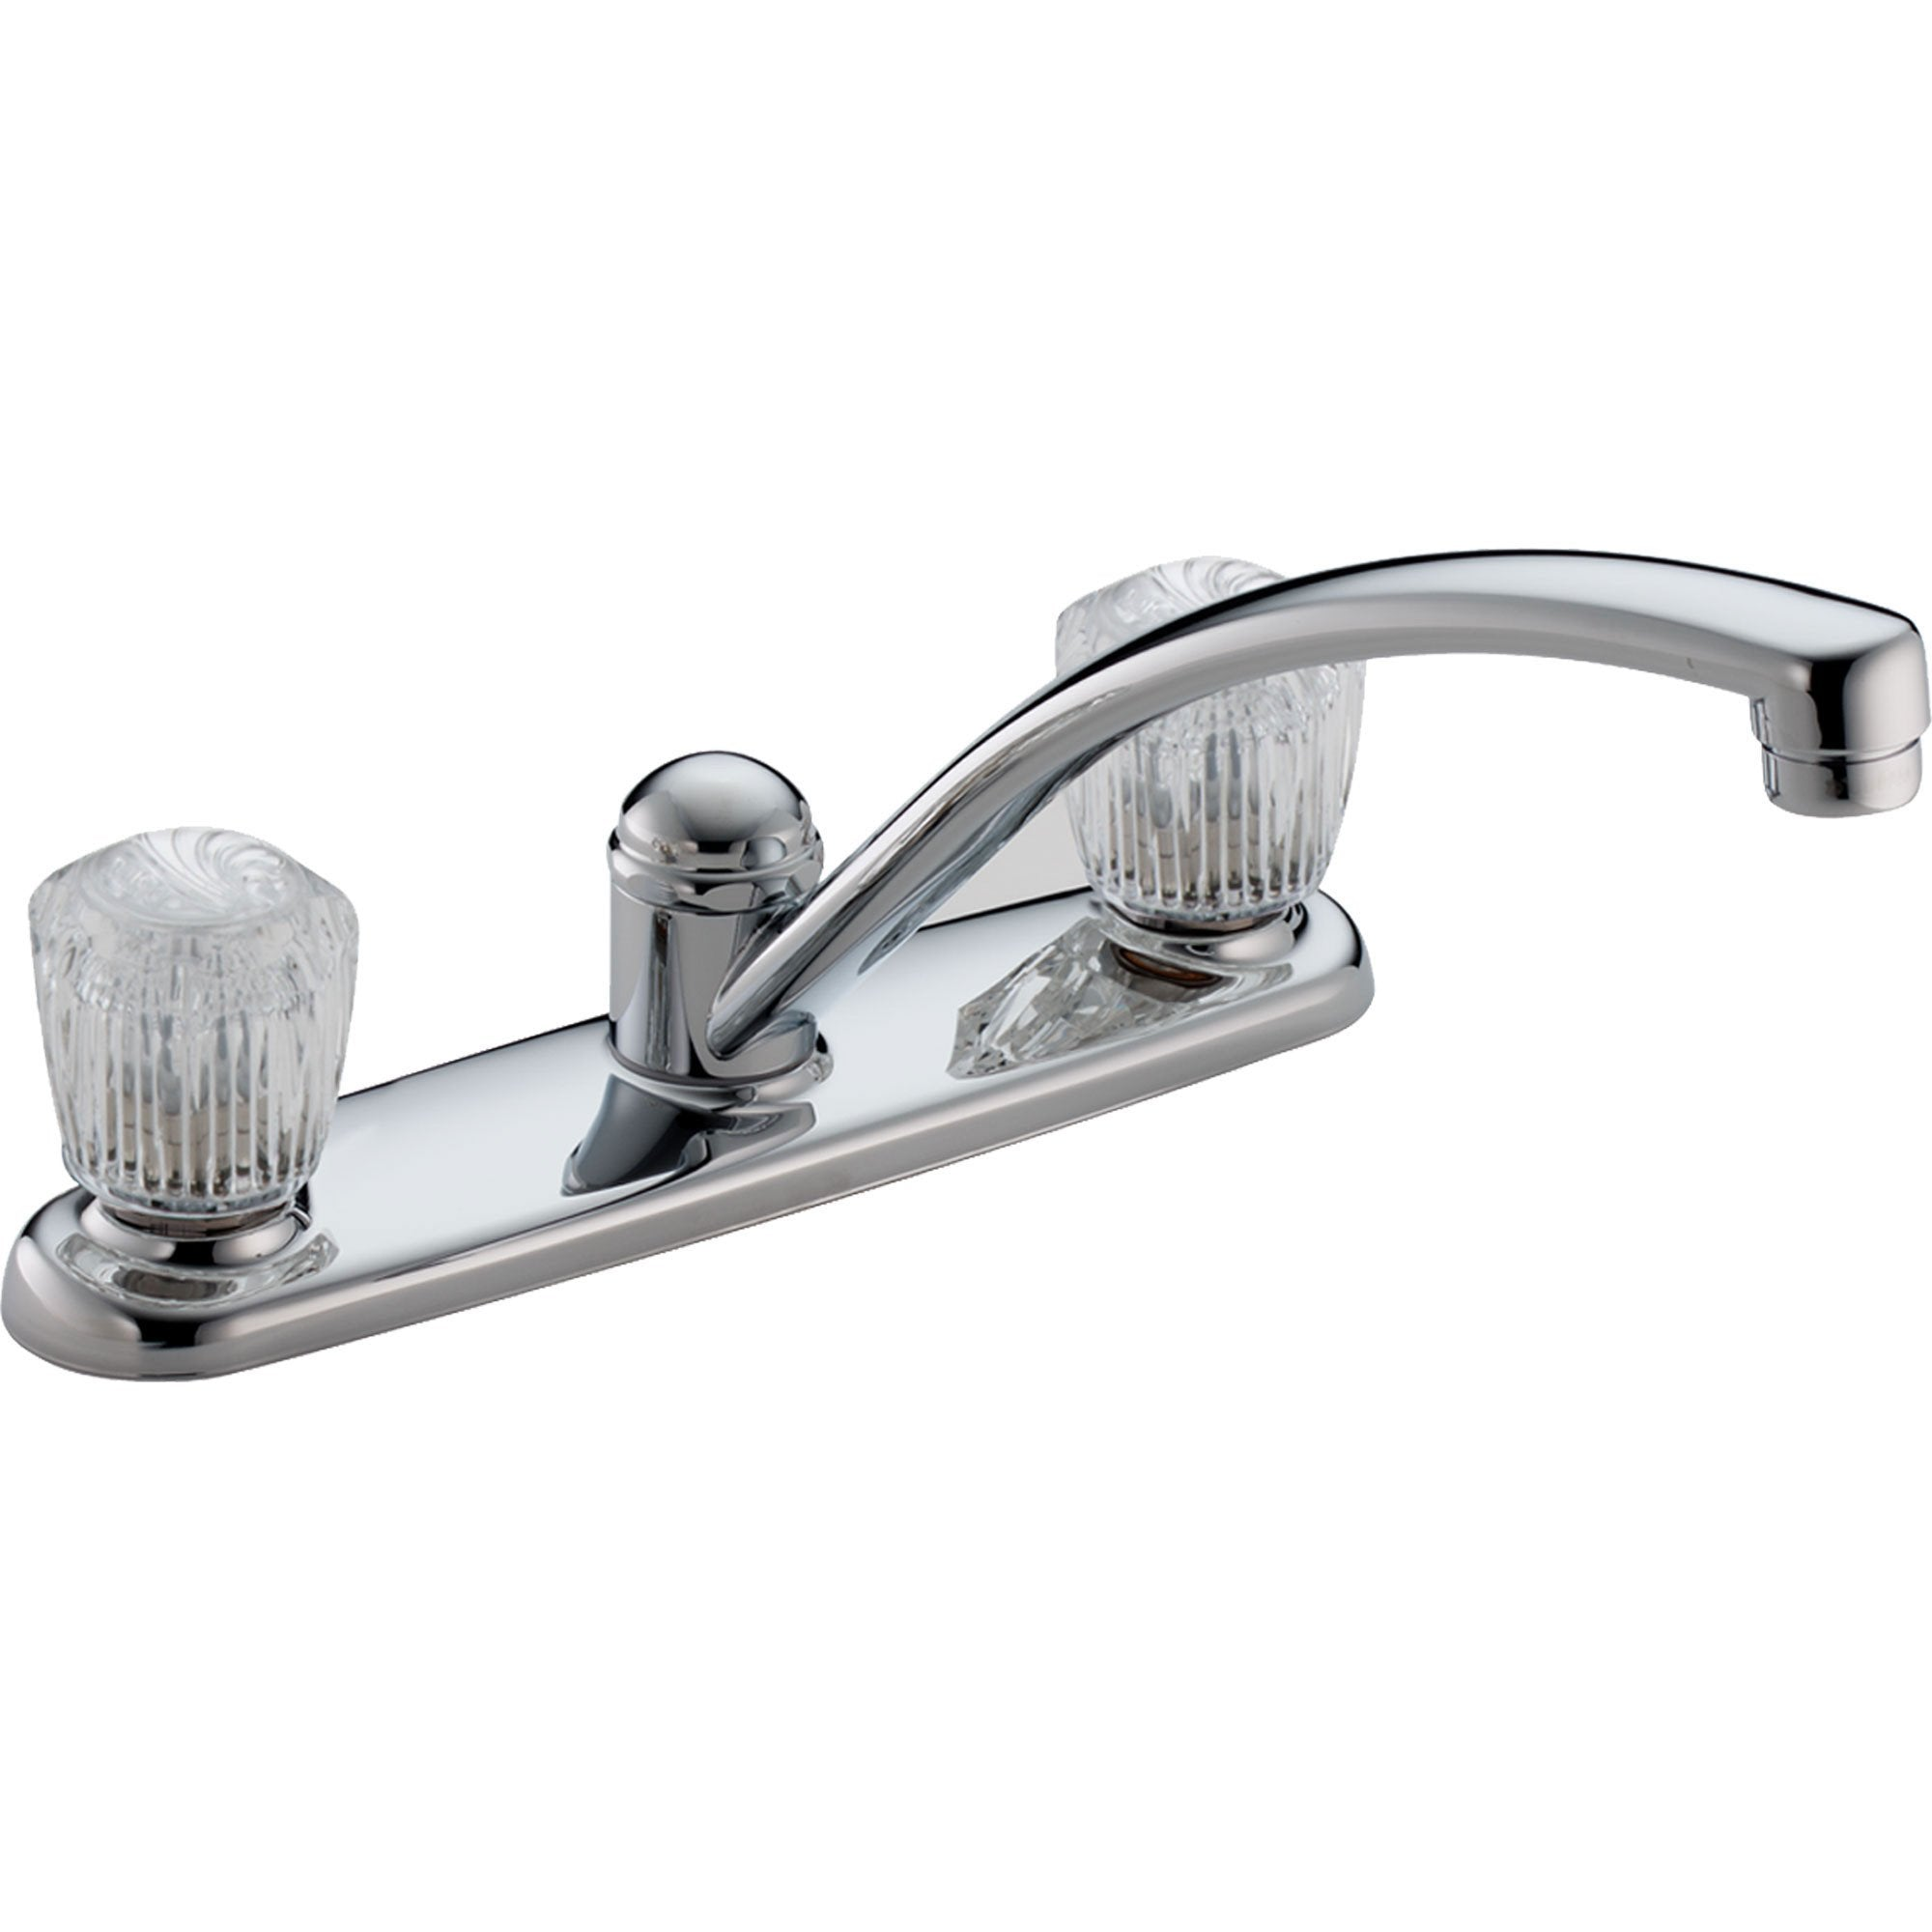 Delta Classic 2-Handle Acrylic Knob Kitchen Faucet in Chrome 474523